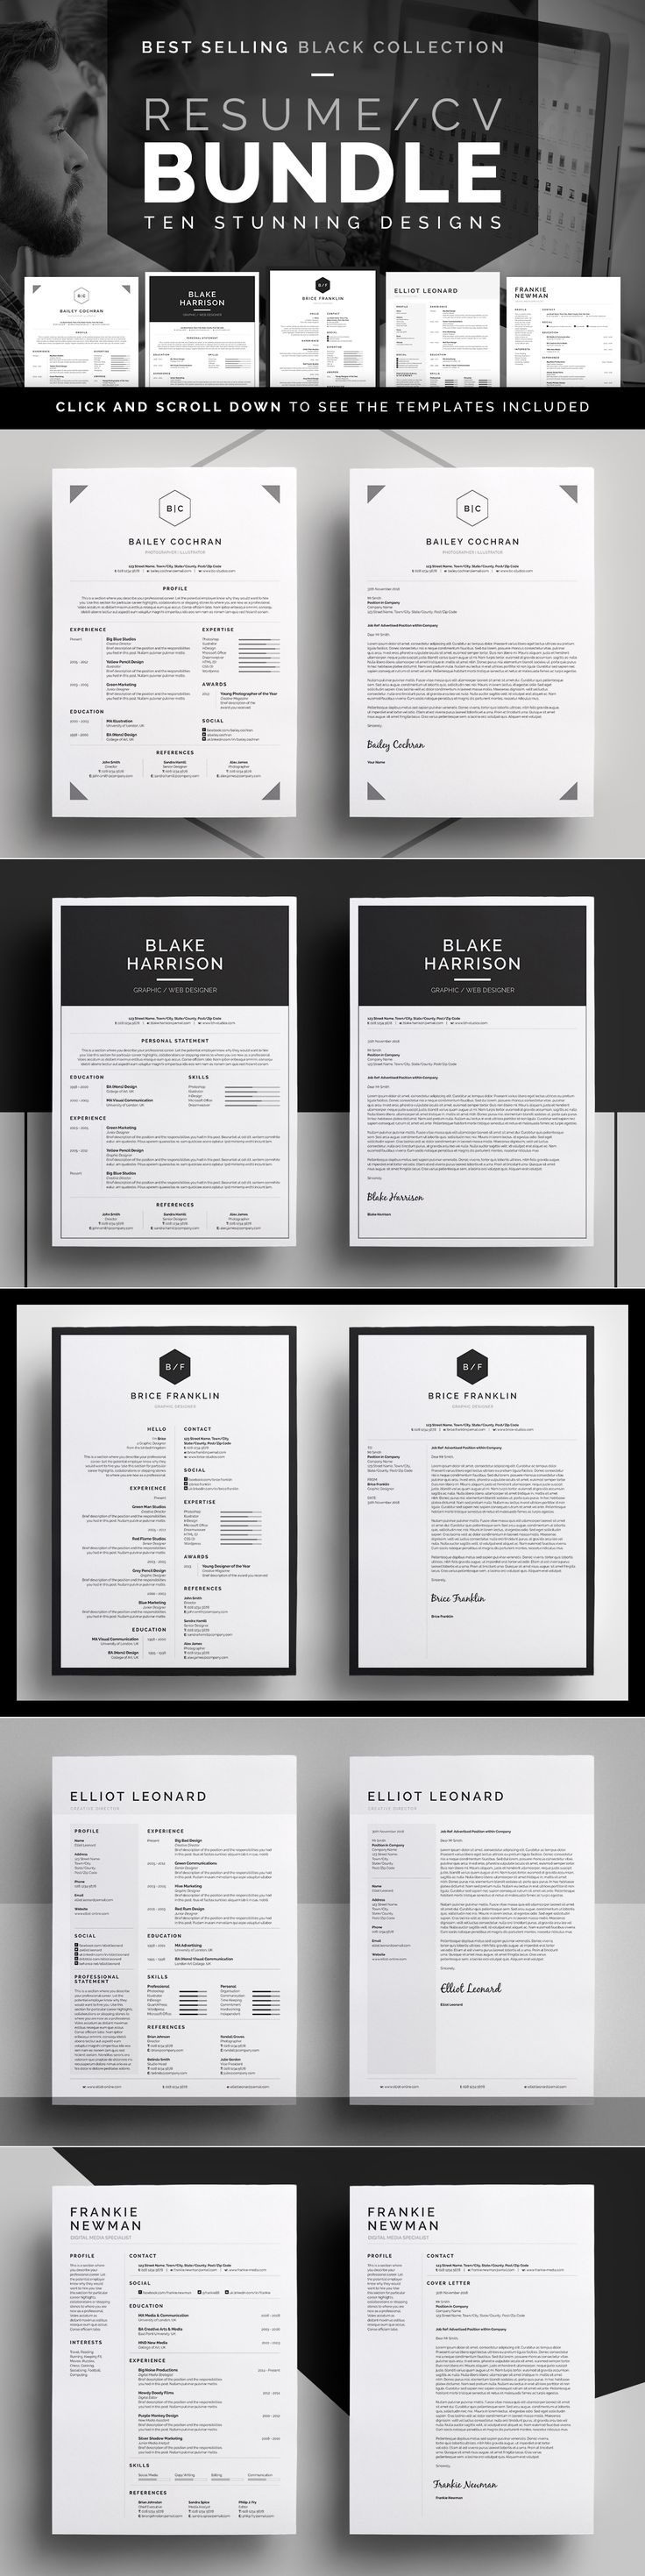 Best Curriculum Vitae Images On   Cv Template